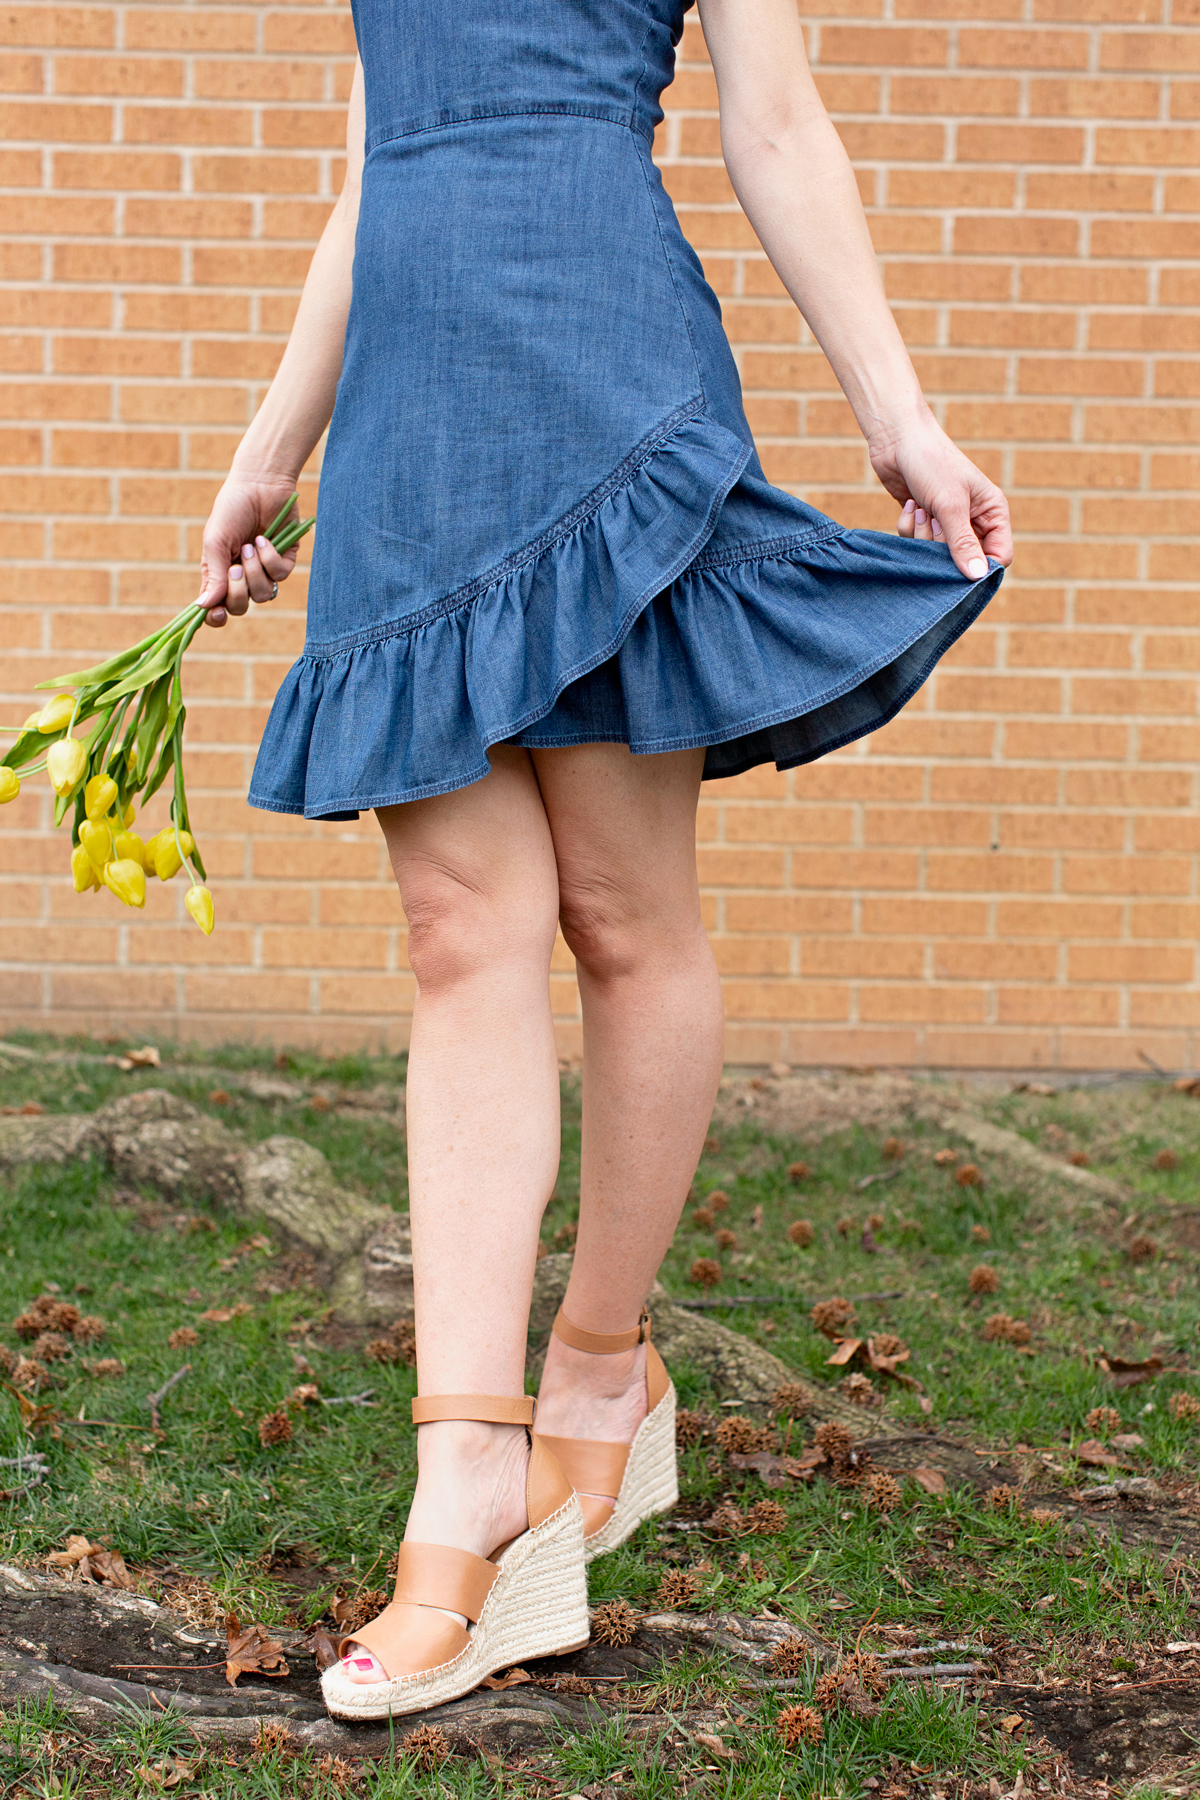 waist down of woman holding yellow flowers and skirt